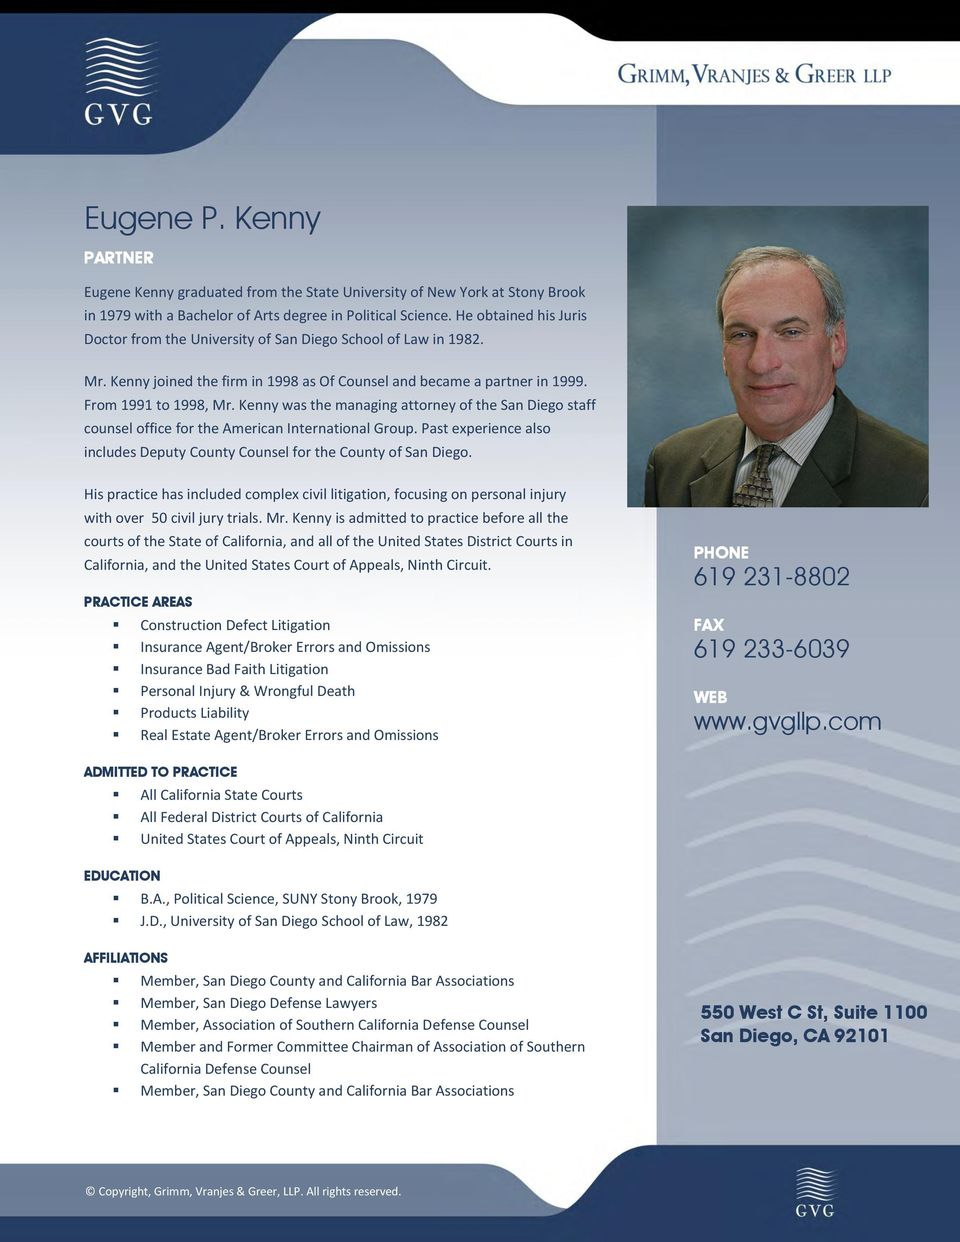 Kenny was the managing attorney of the San Diego staff counsel office for the American International Group. Past experience also includes Deputy County Counsel for the County of San Diego.